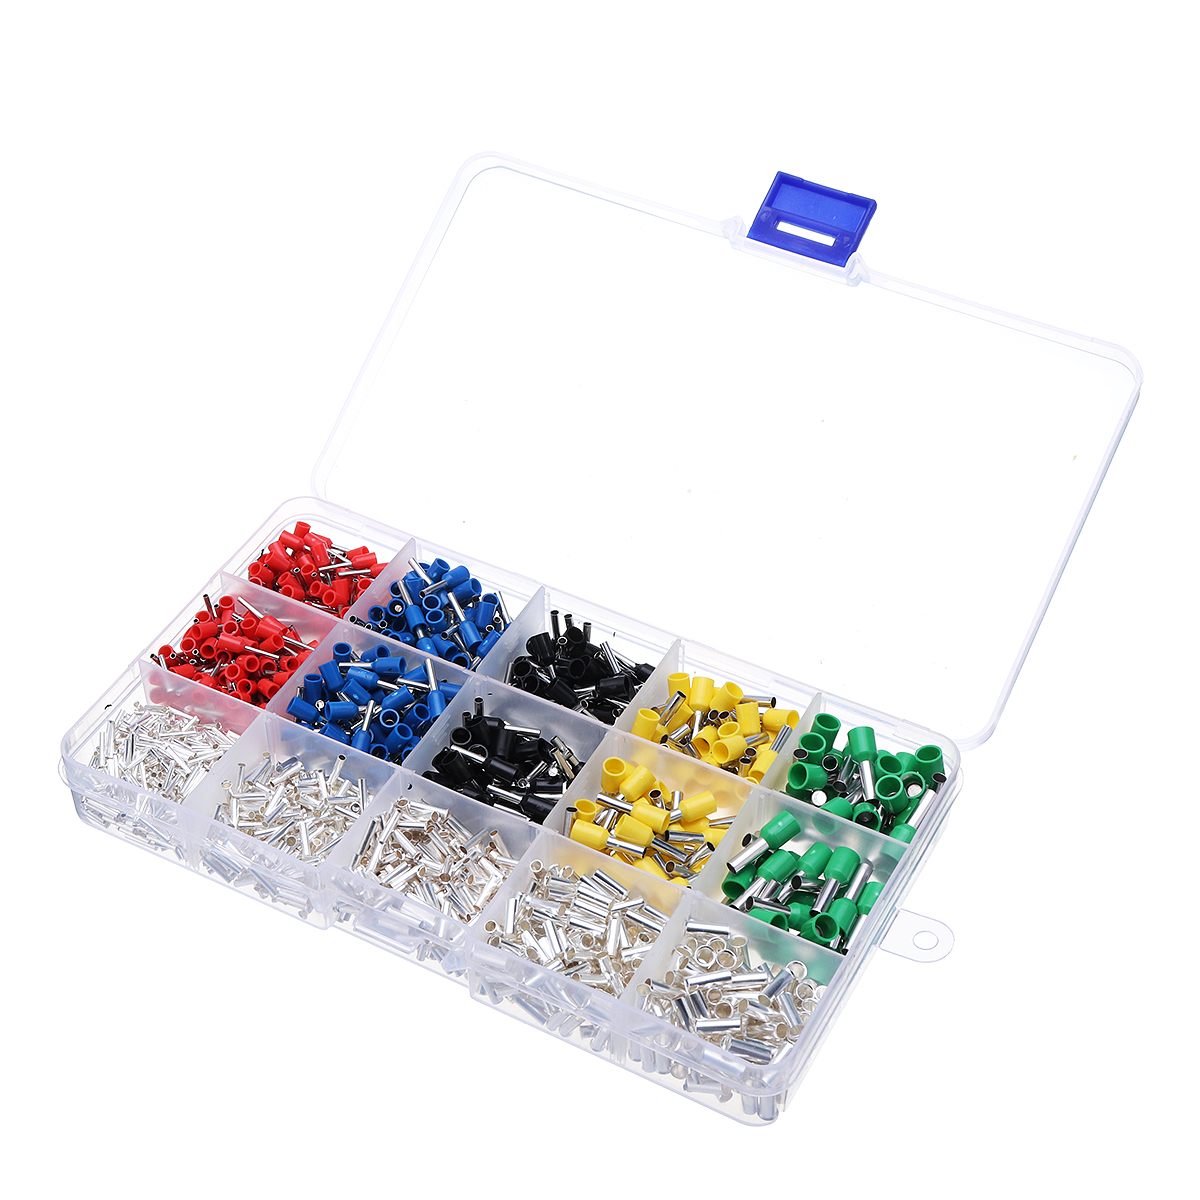 1350 Pcs Connector Wire Terminal Kit